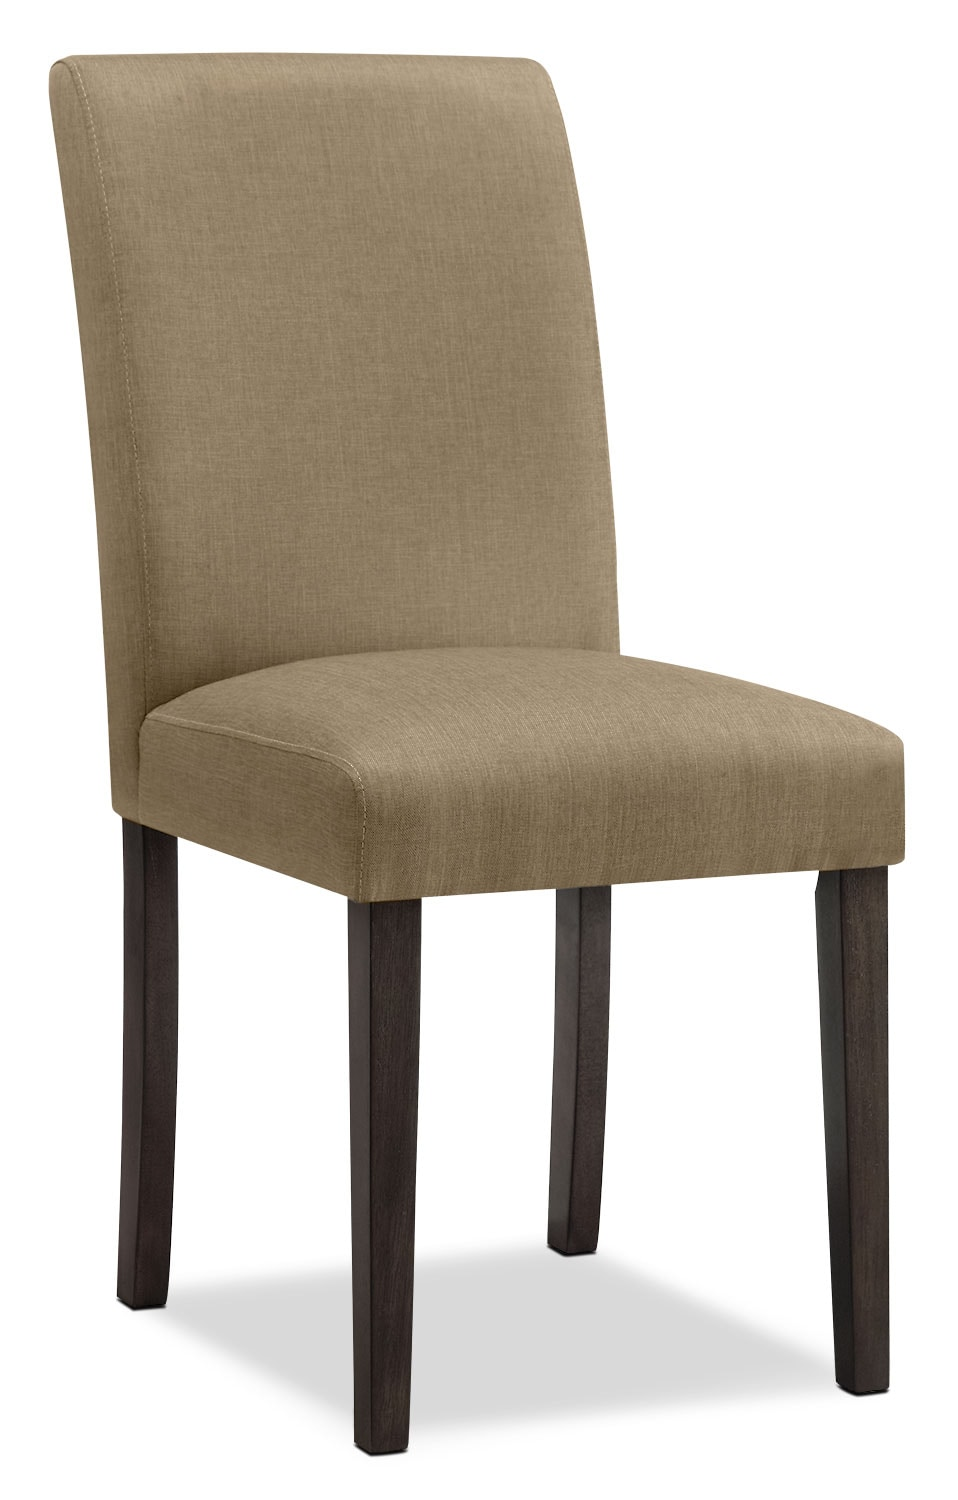 Dining Room Furniture - Skye Dining Chair – Beige